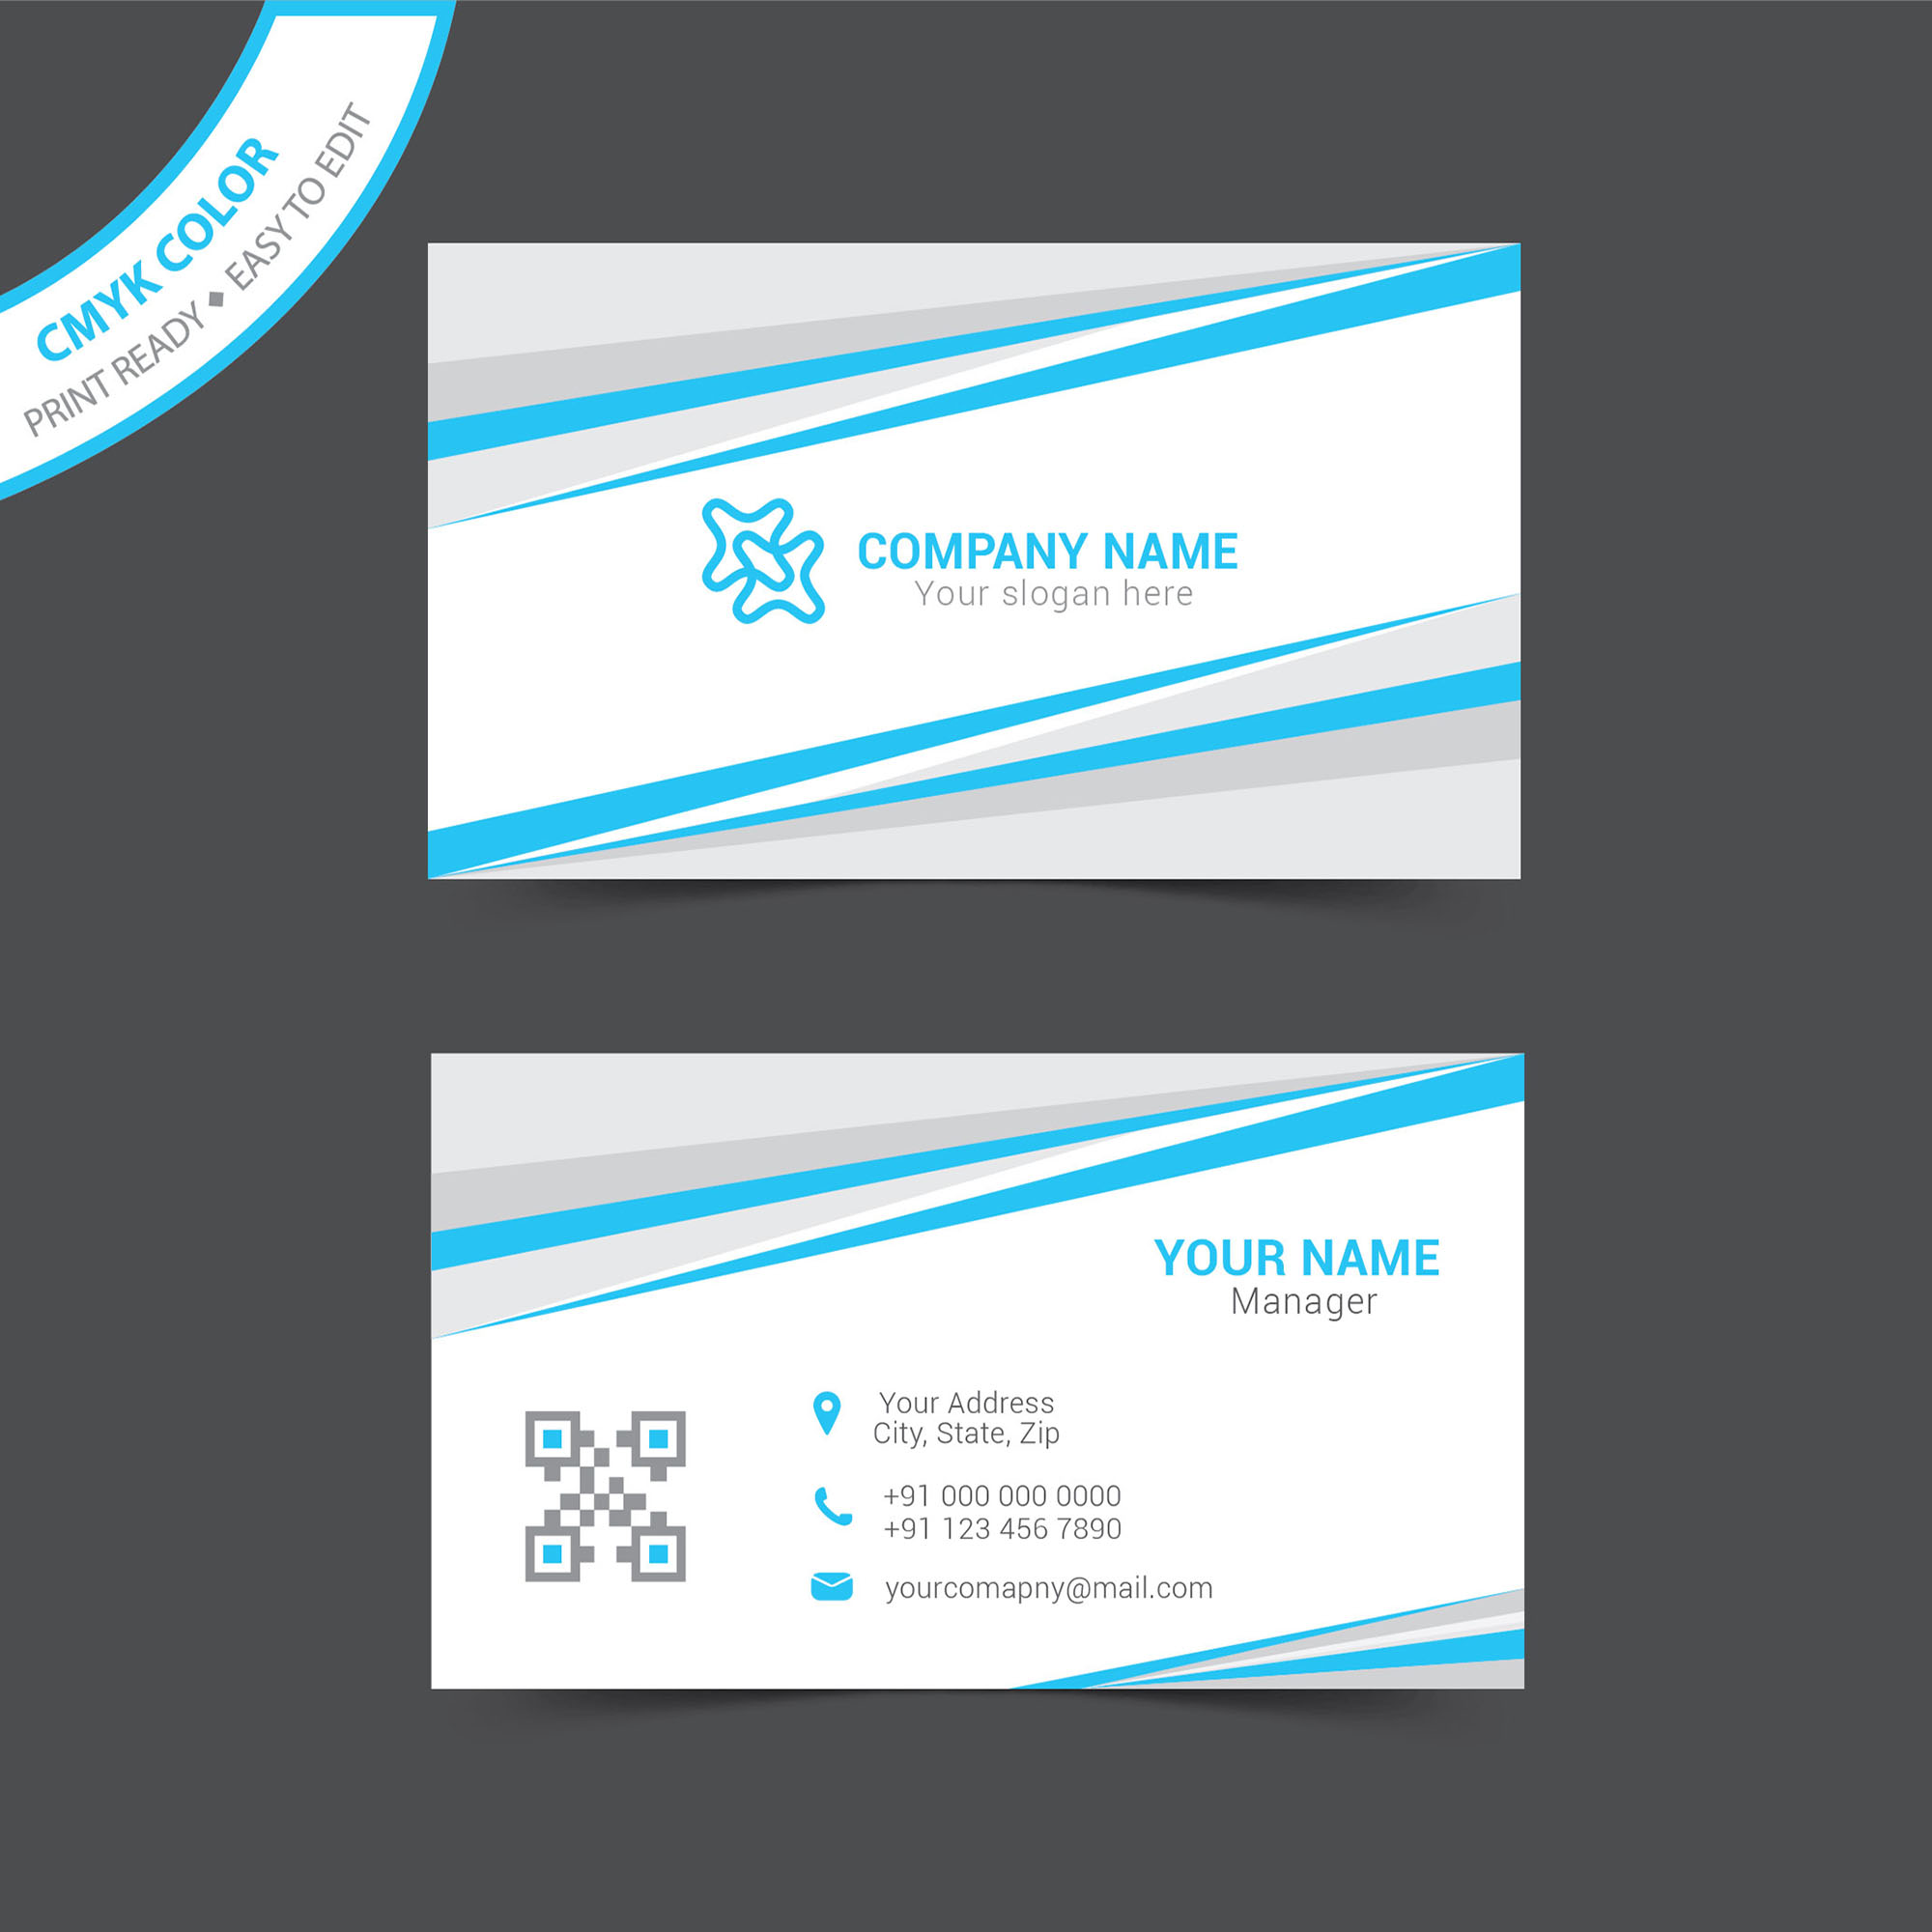 Simple business card template free download wisxi business card business cards business card design business card template design templates accmission Gallery